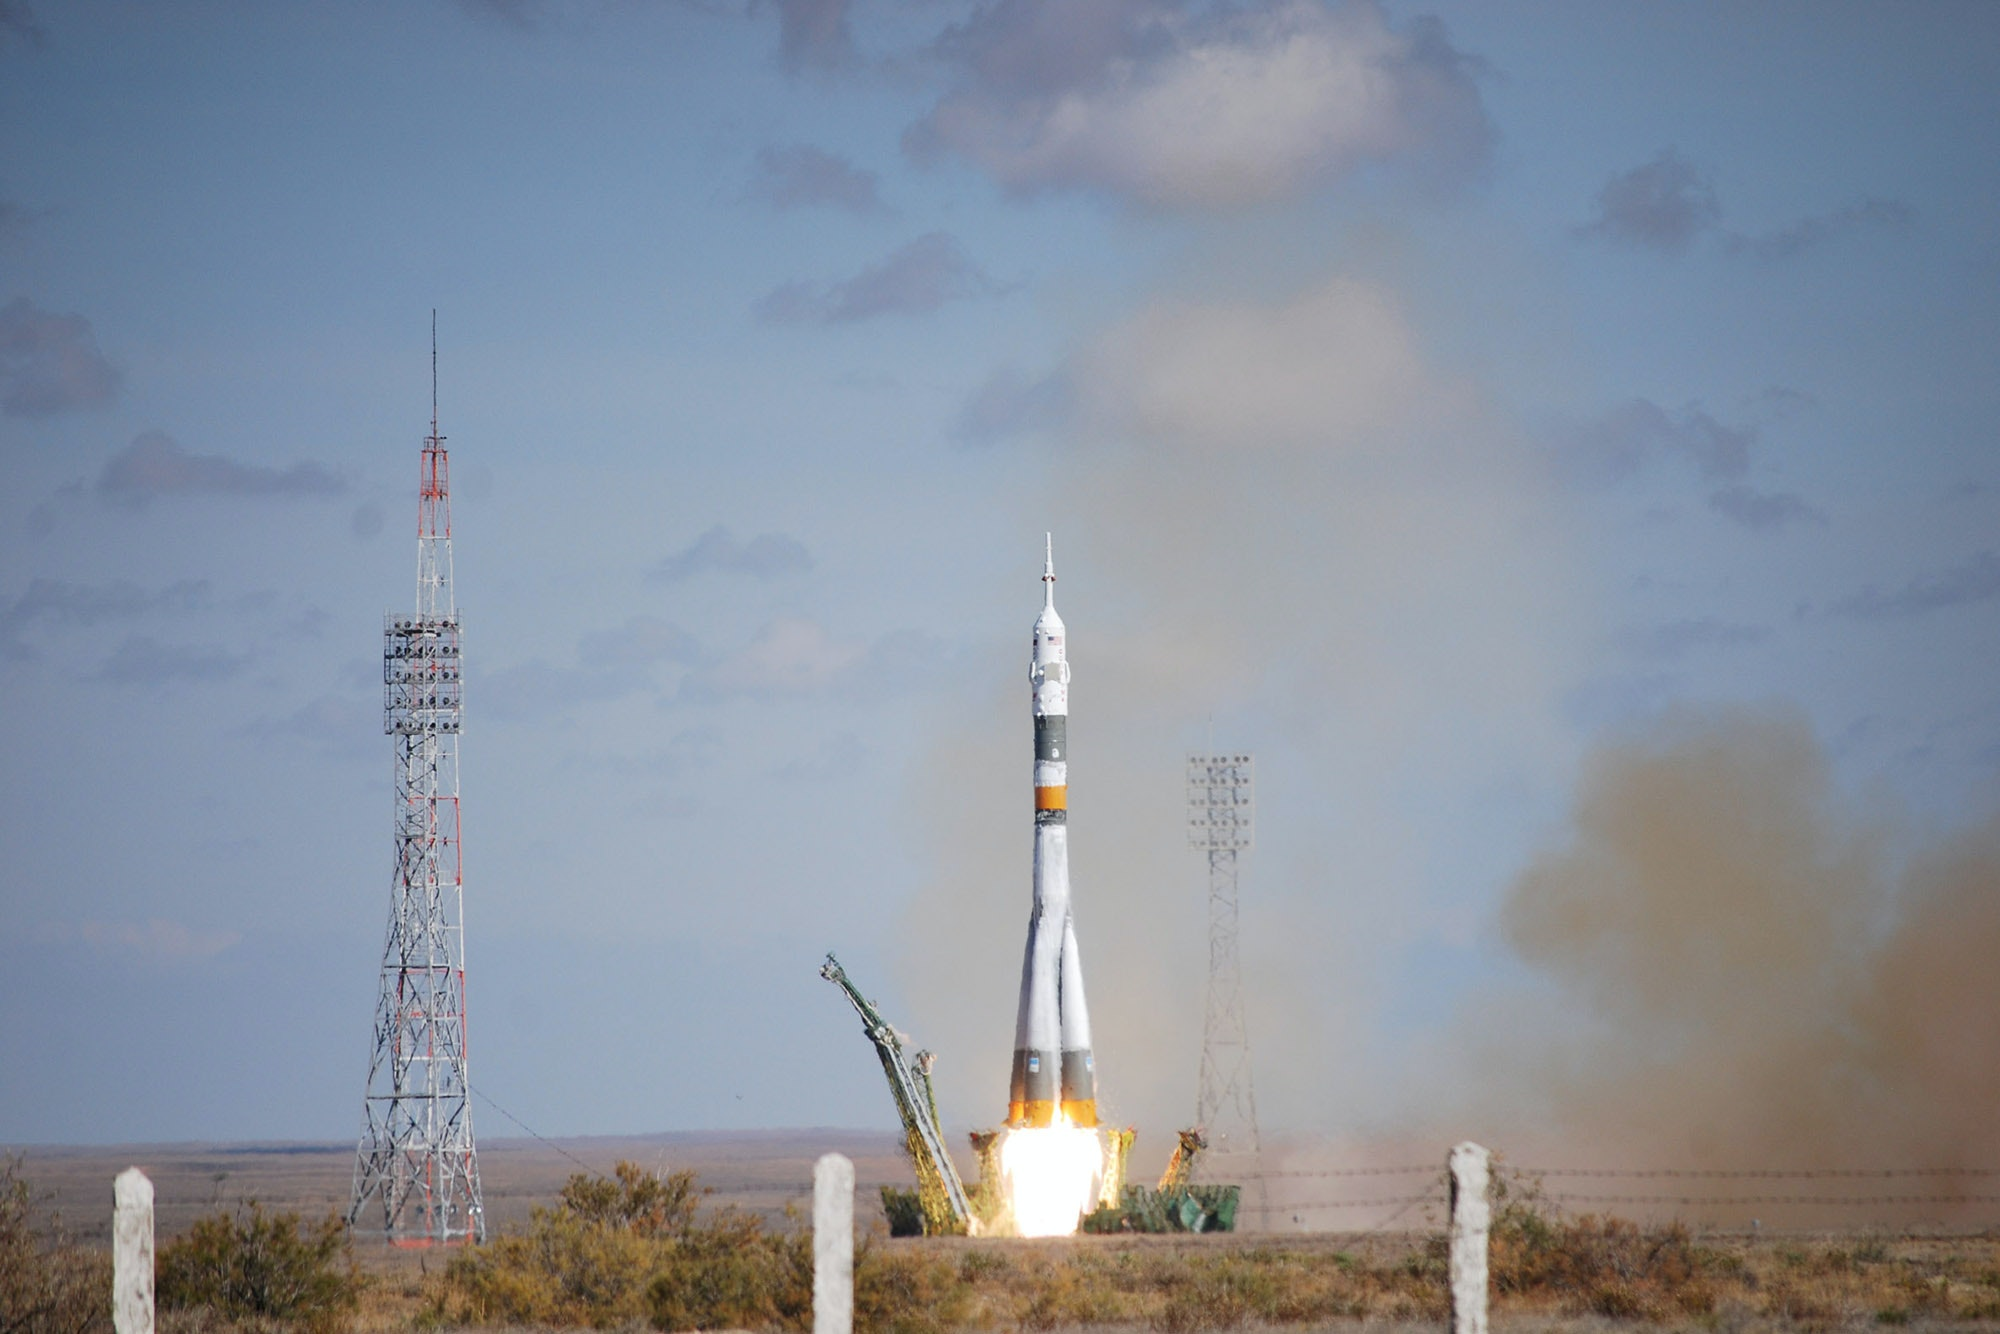 The launch of a Soyuz spacecraft to the International Space Station